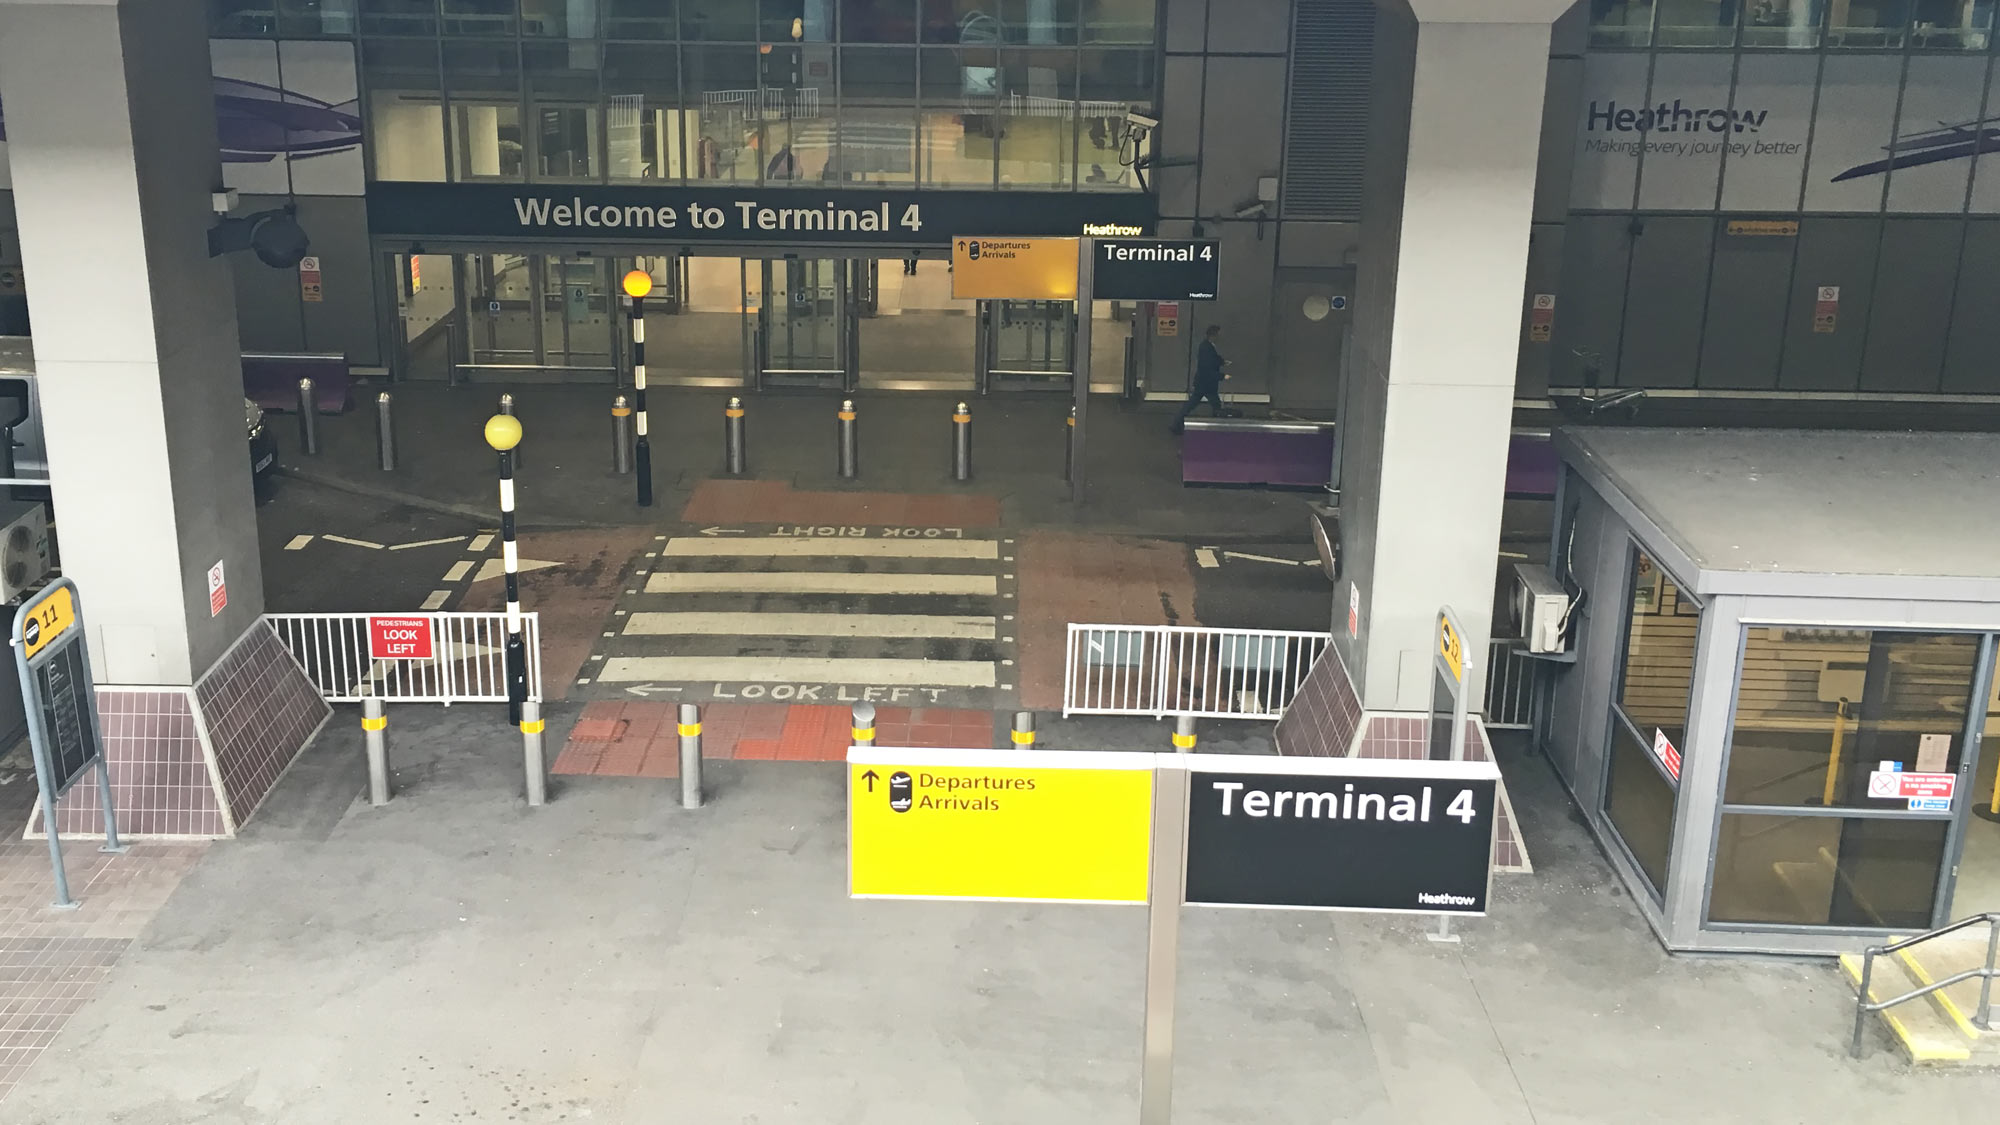 Terminal 4 at Heathrow